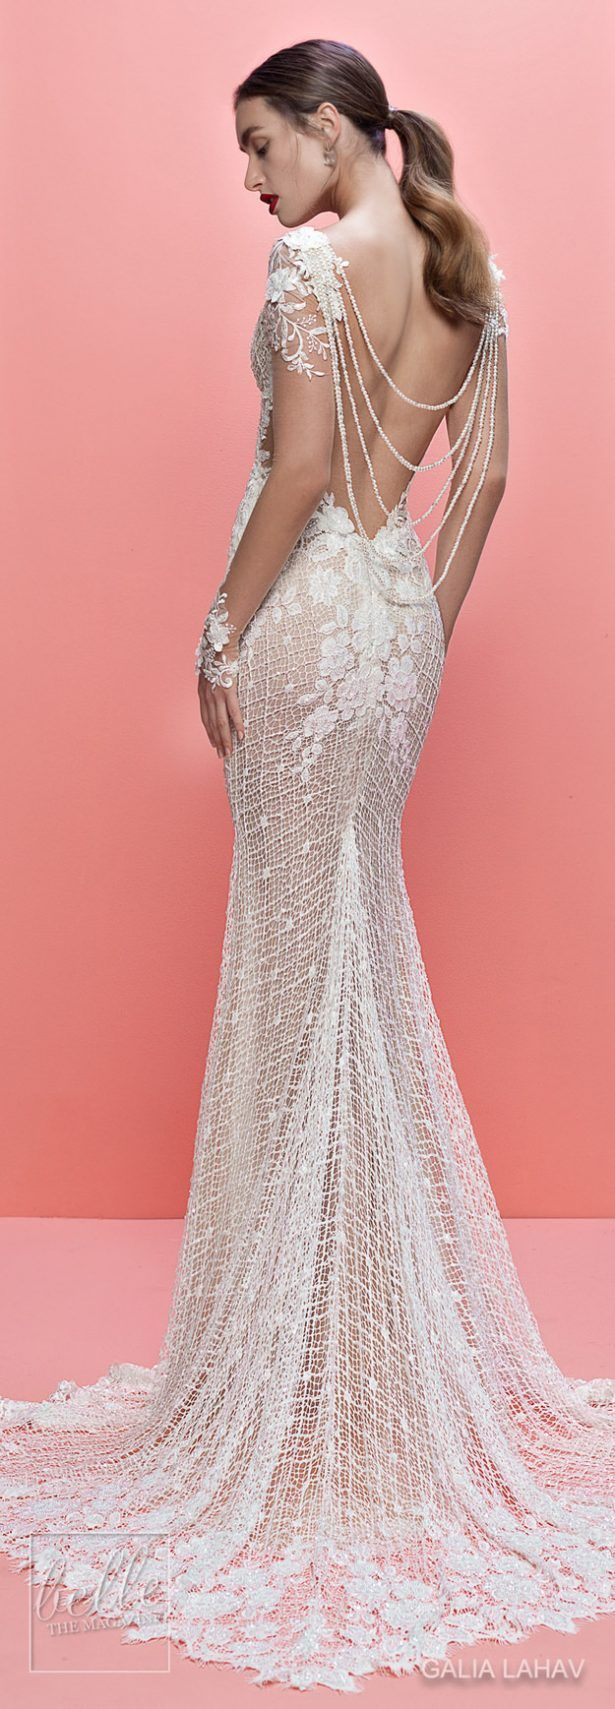 Galia lahav couture bridal spring collection queen of hearts